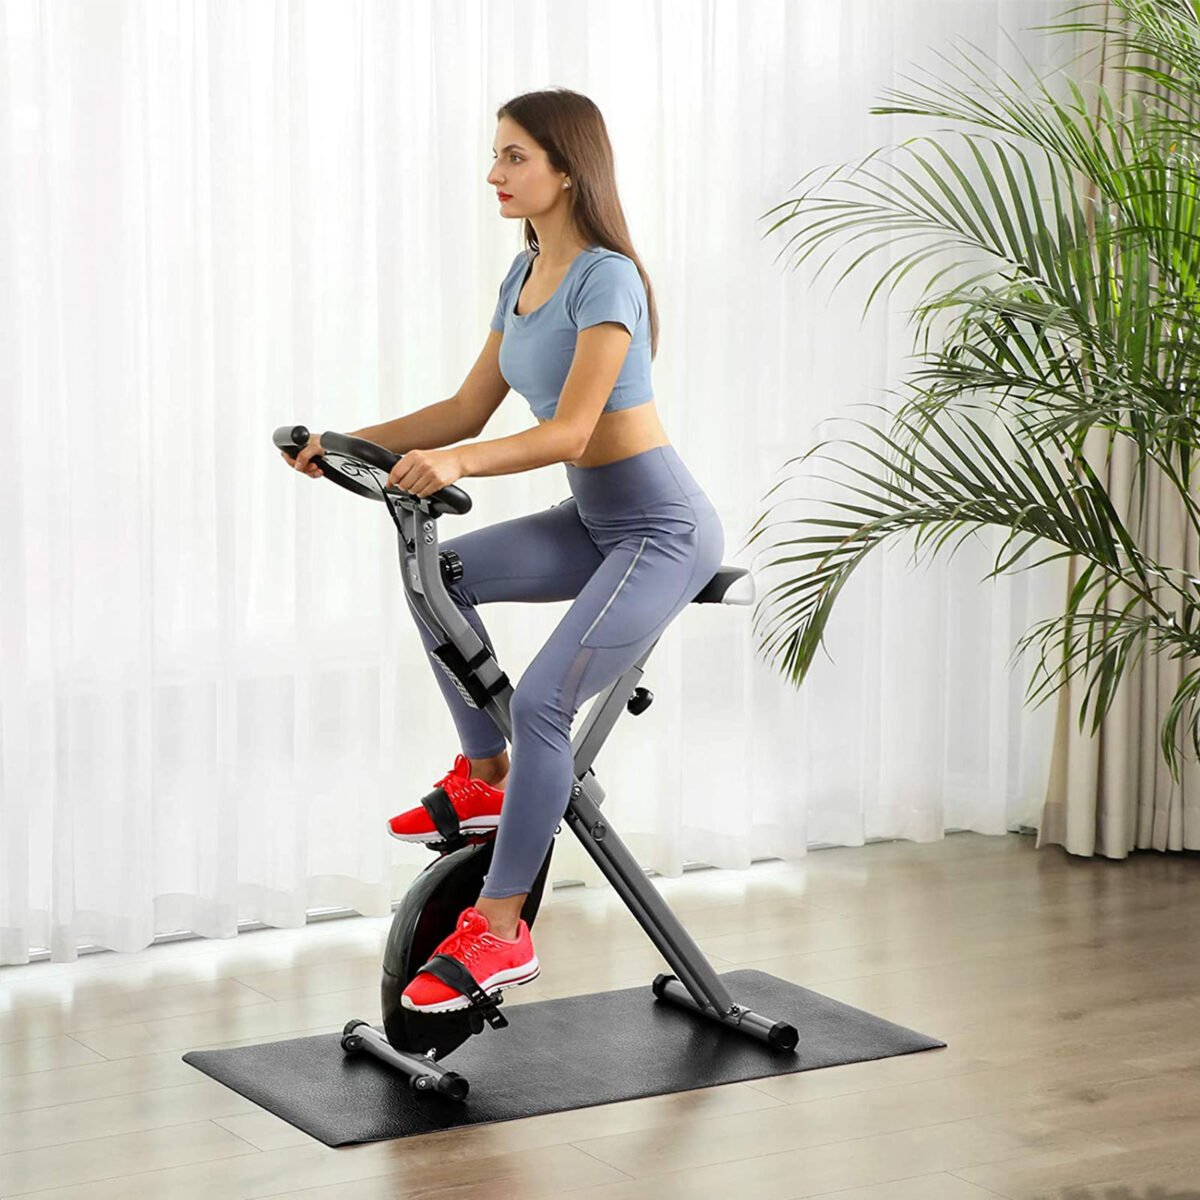 SONGMICS Exercise Bike Voucher Code and Discount price